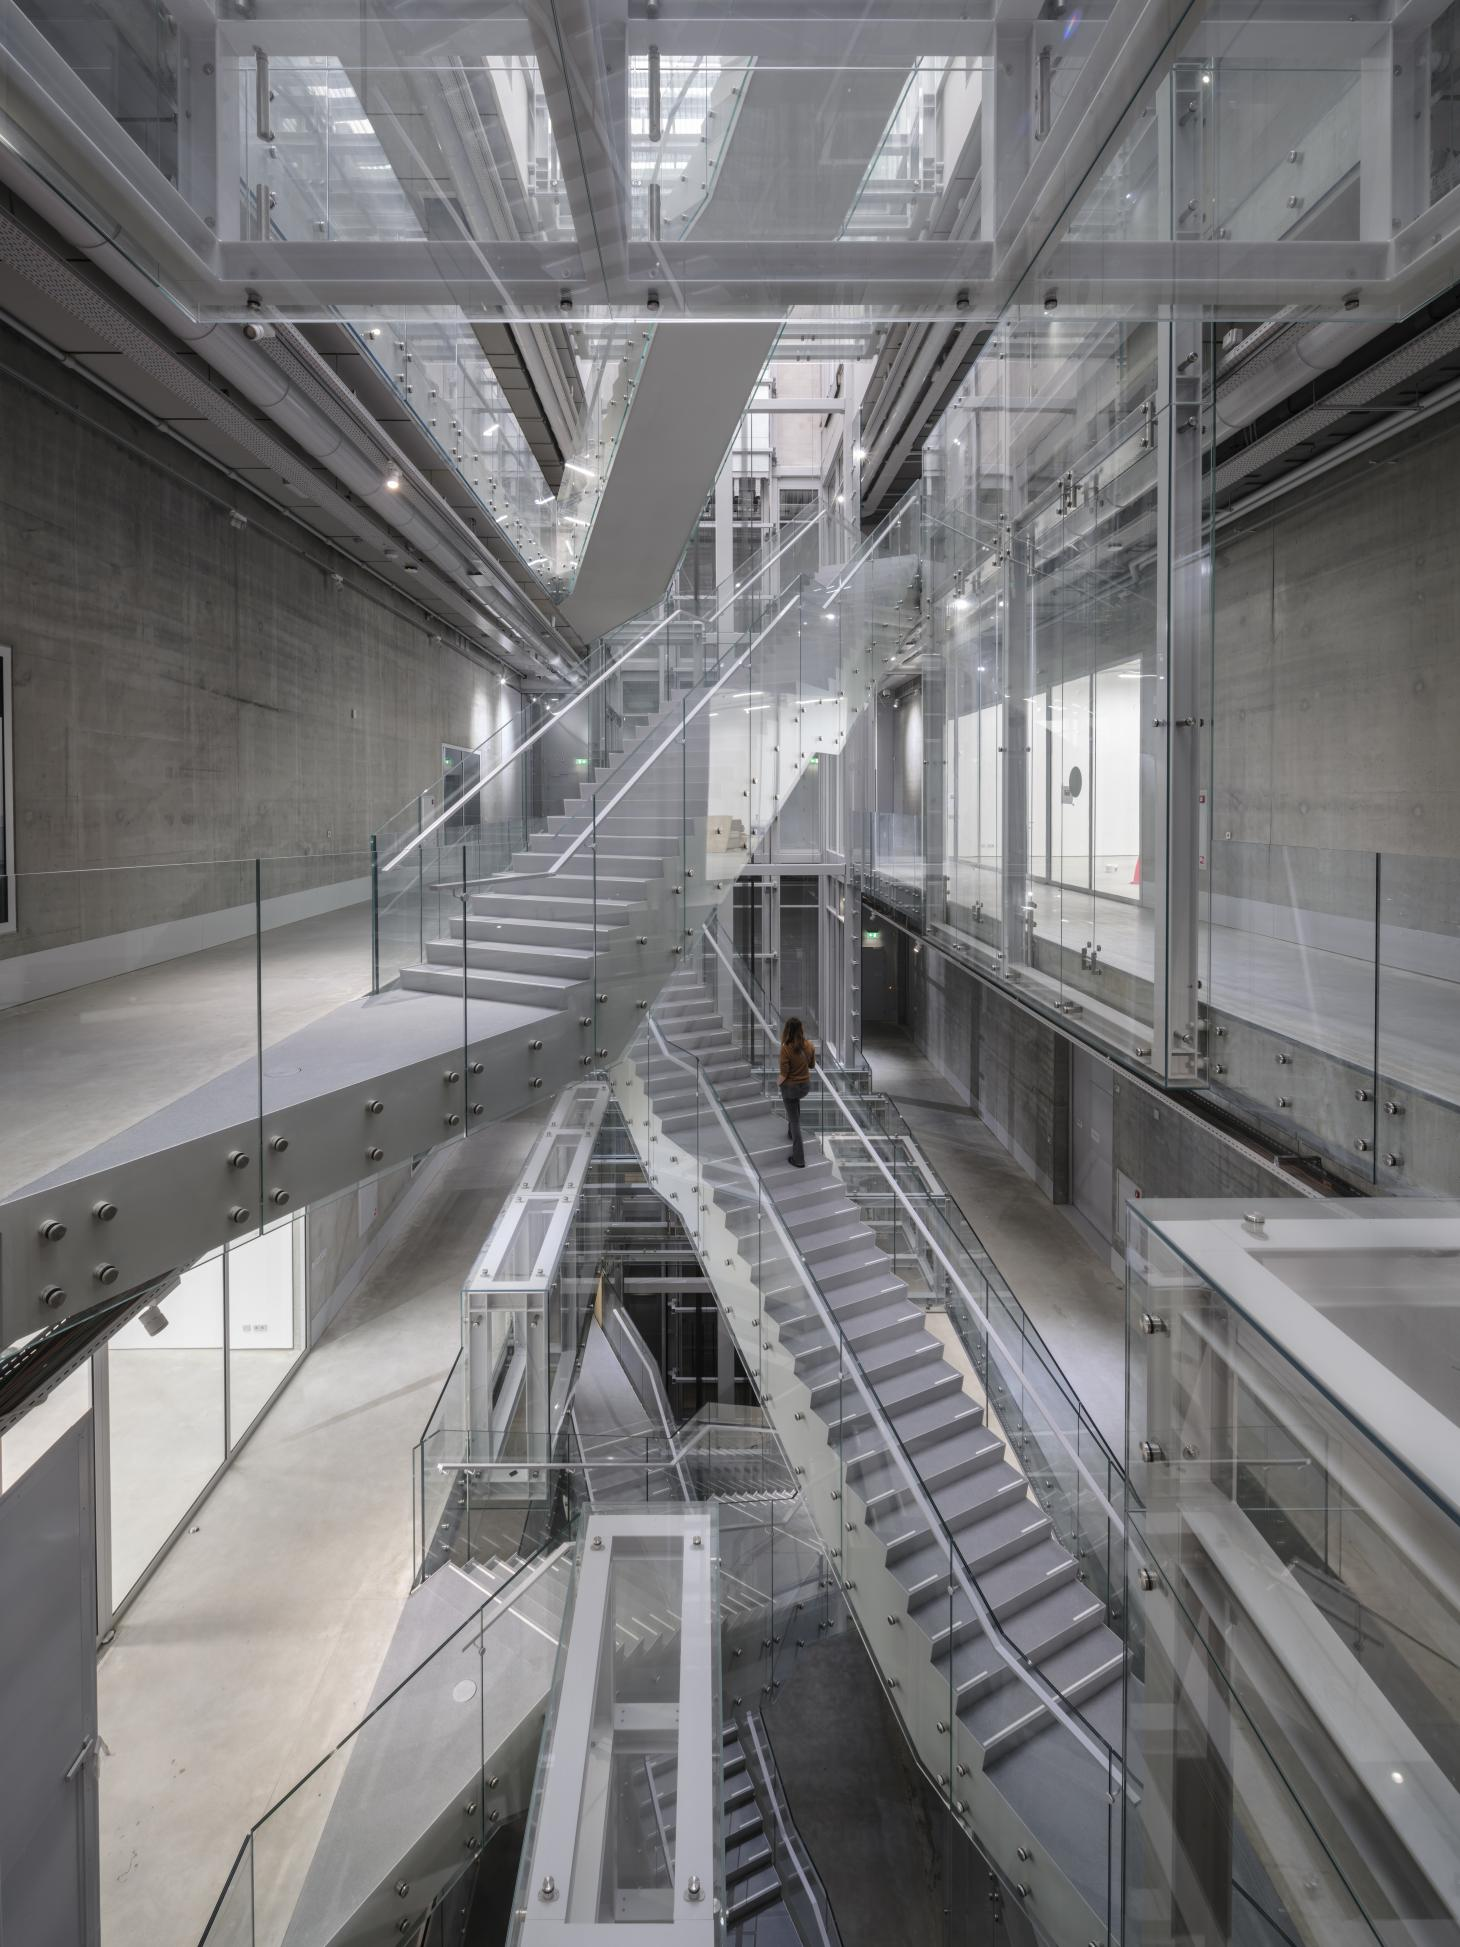 crisscrossing staircases at the new boijmans depot